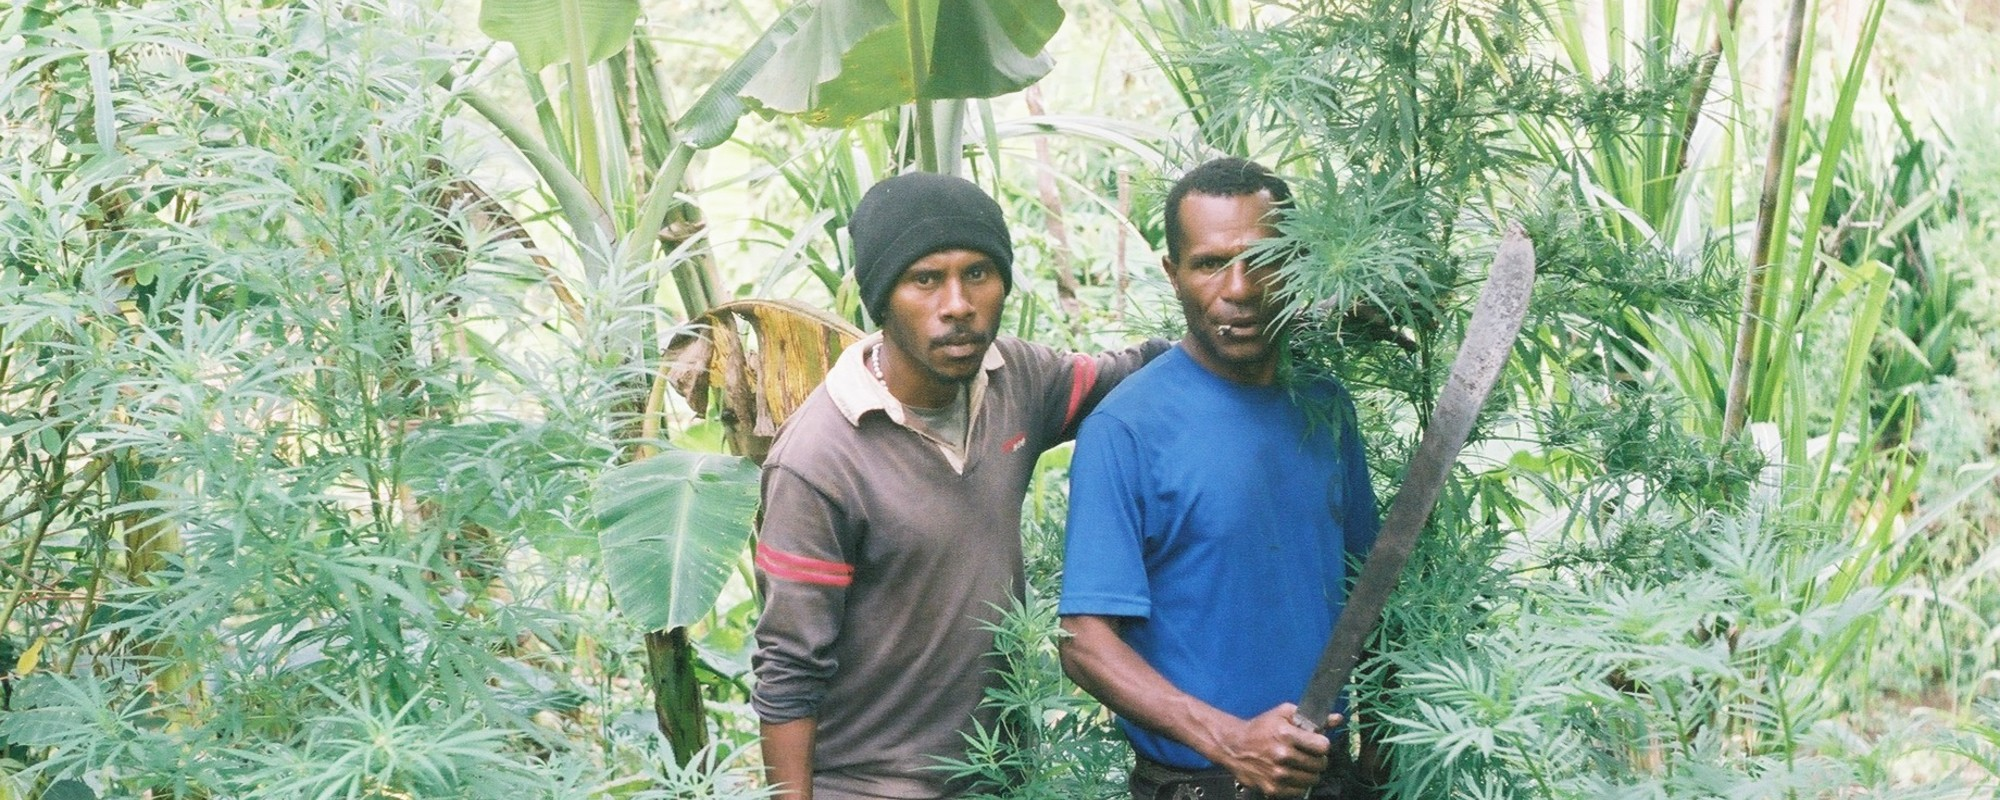 Polaroids from Papua New Guinea's Weed-Growing Highlands